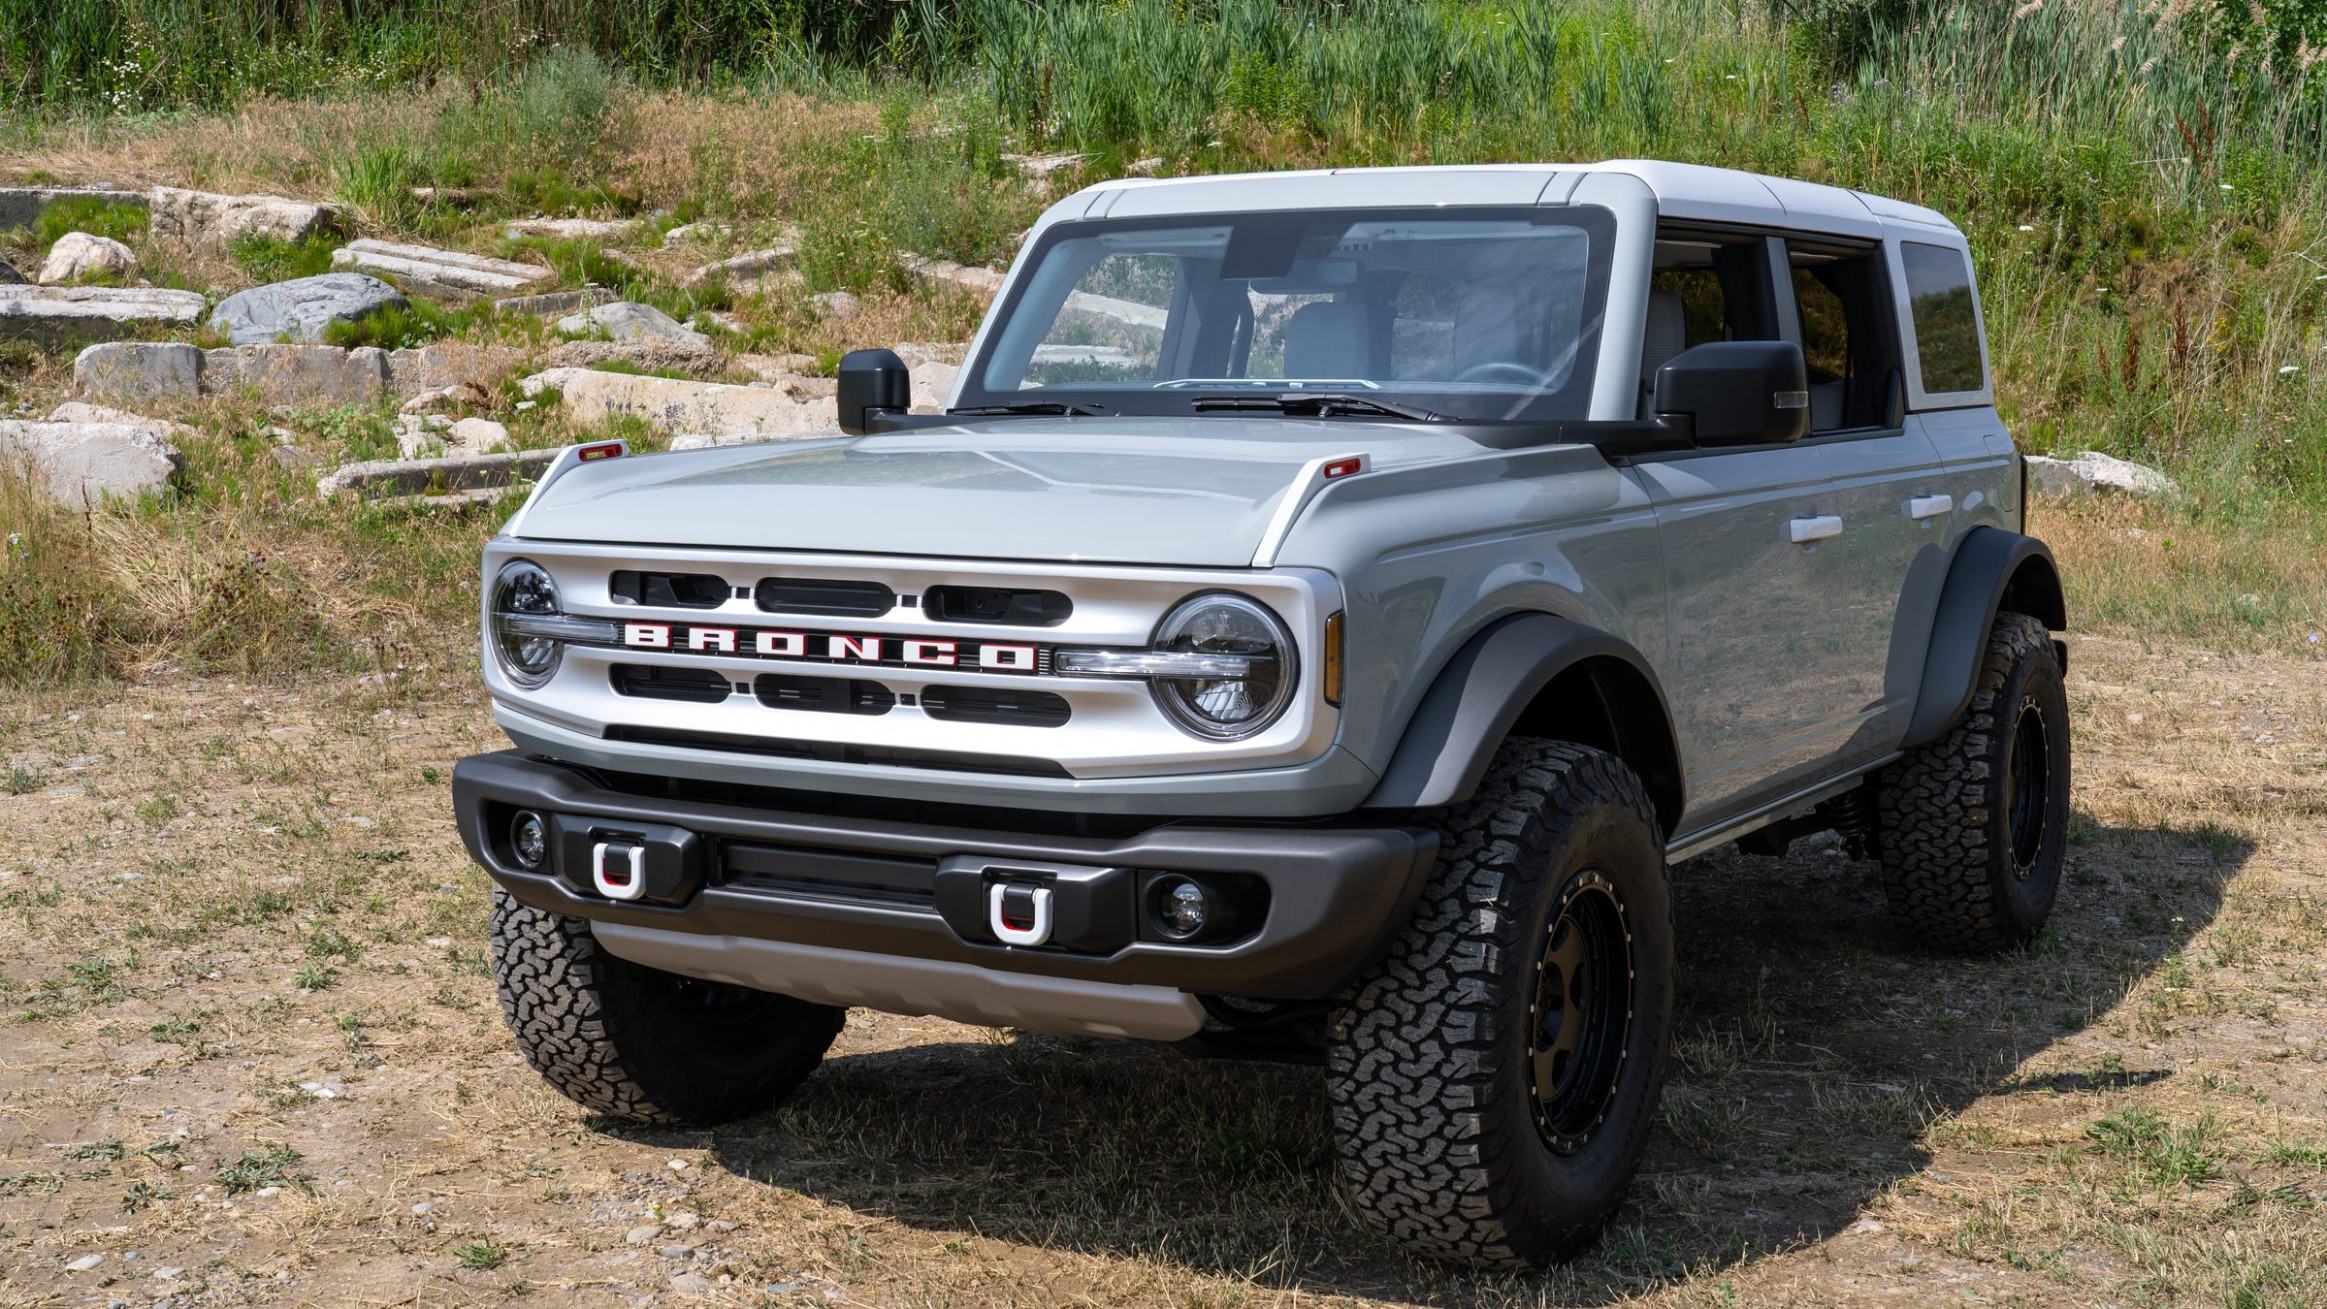 Model Build Your Own 2022 Ford Bronco